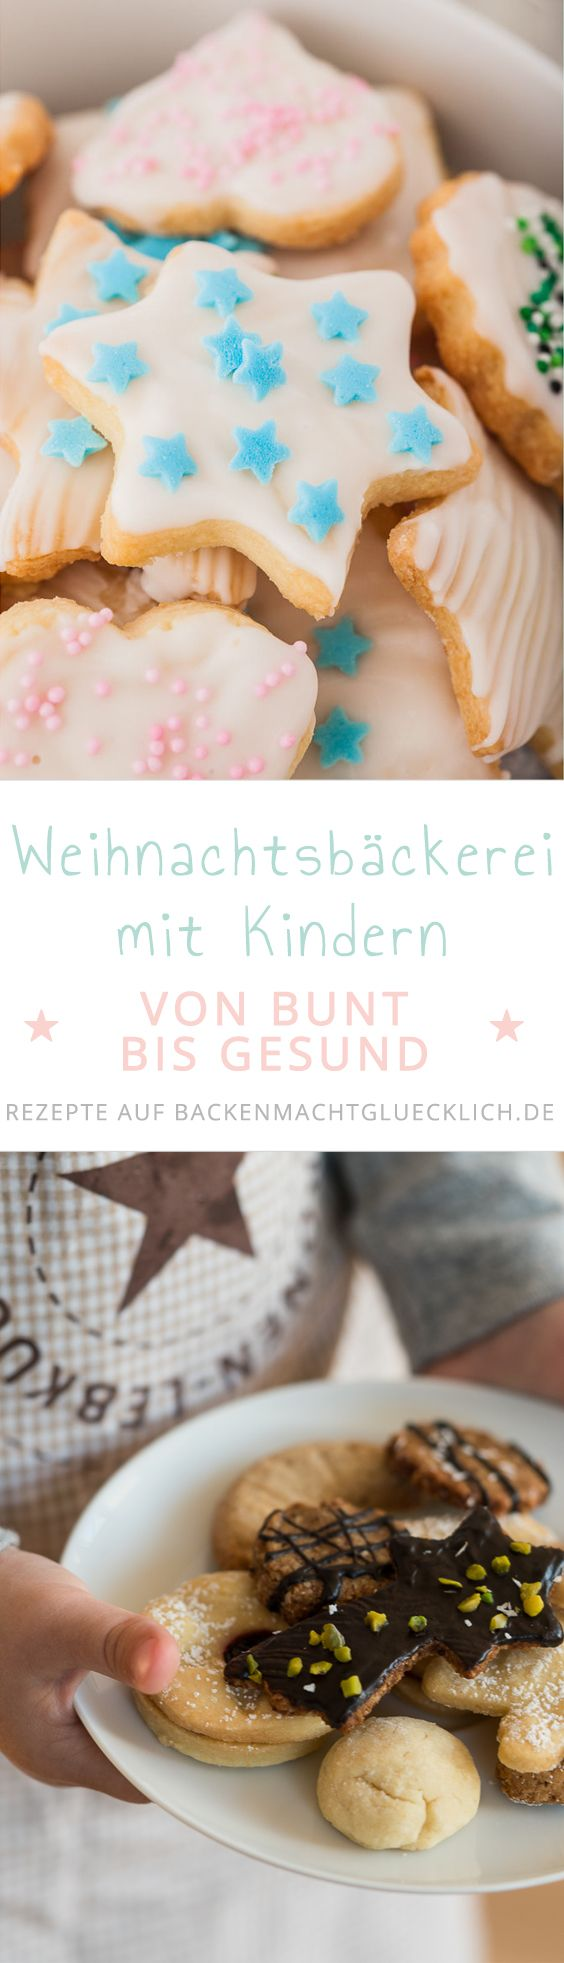 weihnachtsb ckerei mit kindern backen mit kindern rezepte pinterest pl tzchen. Black Bedroom Furniture Sets. Home Design Ideas